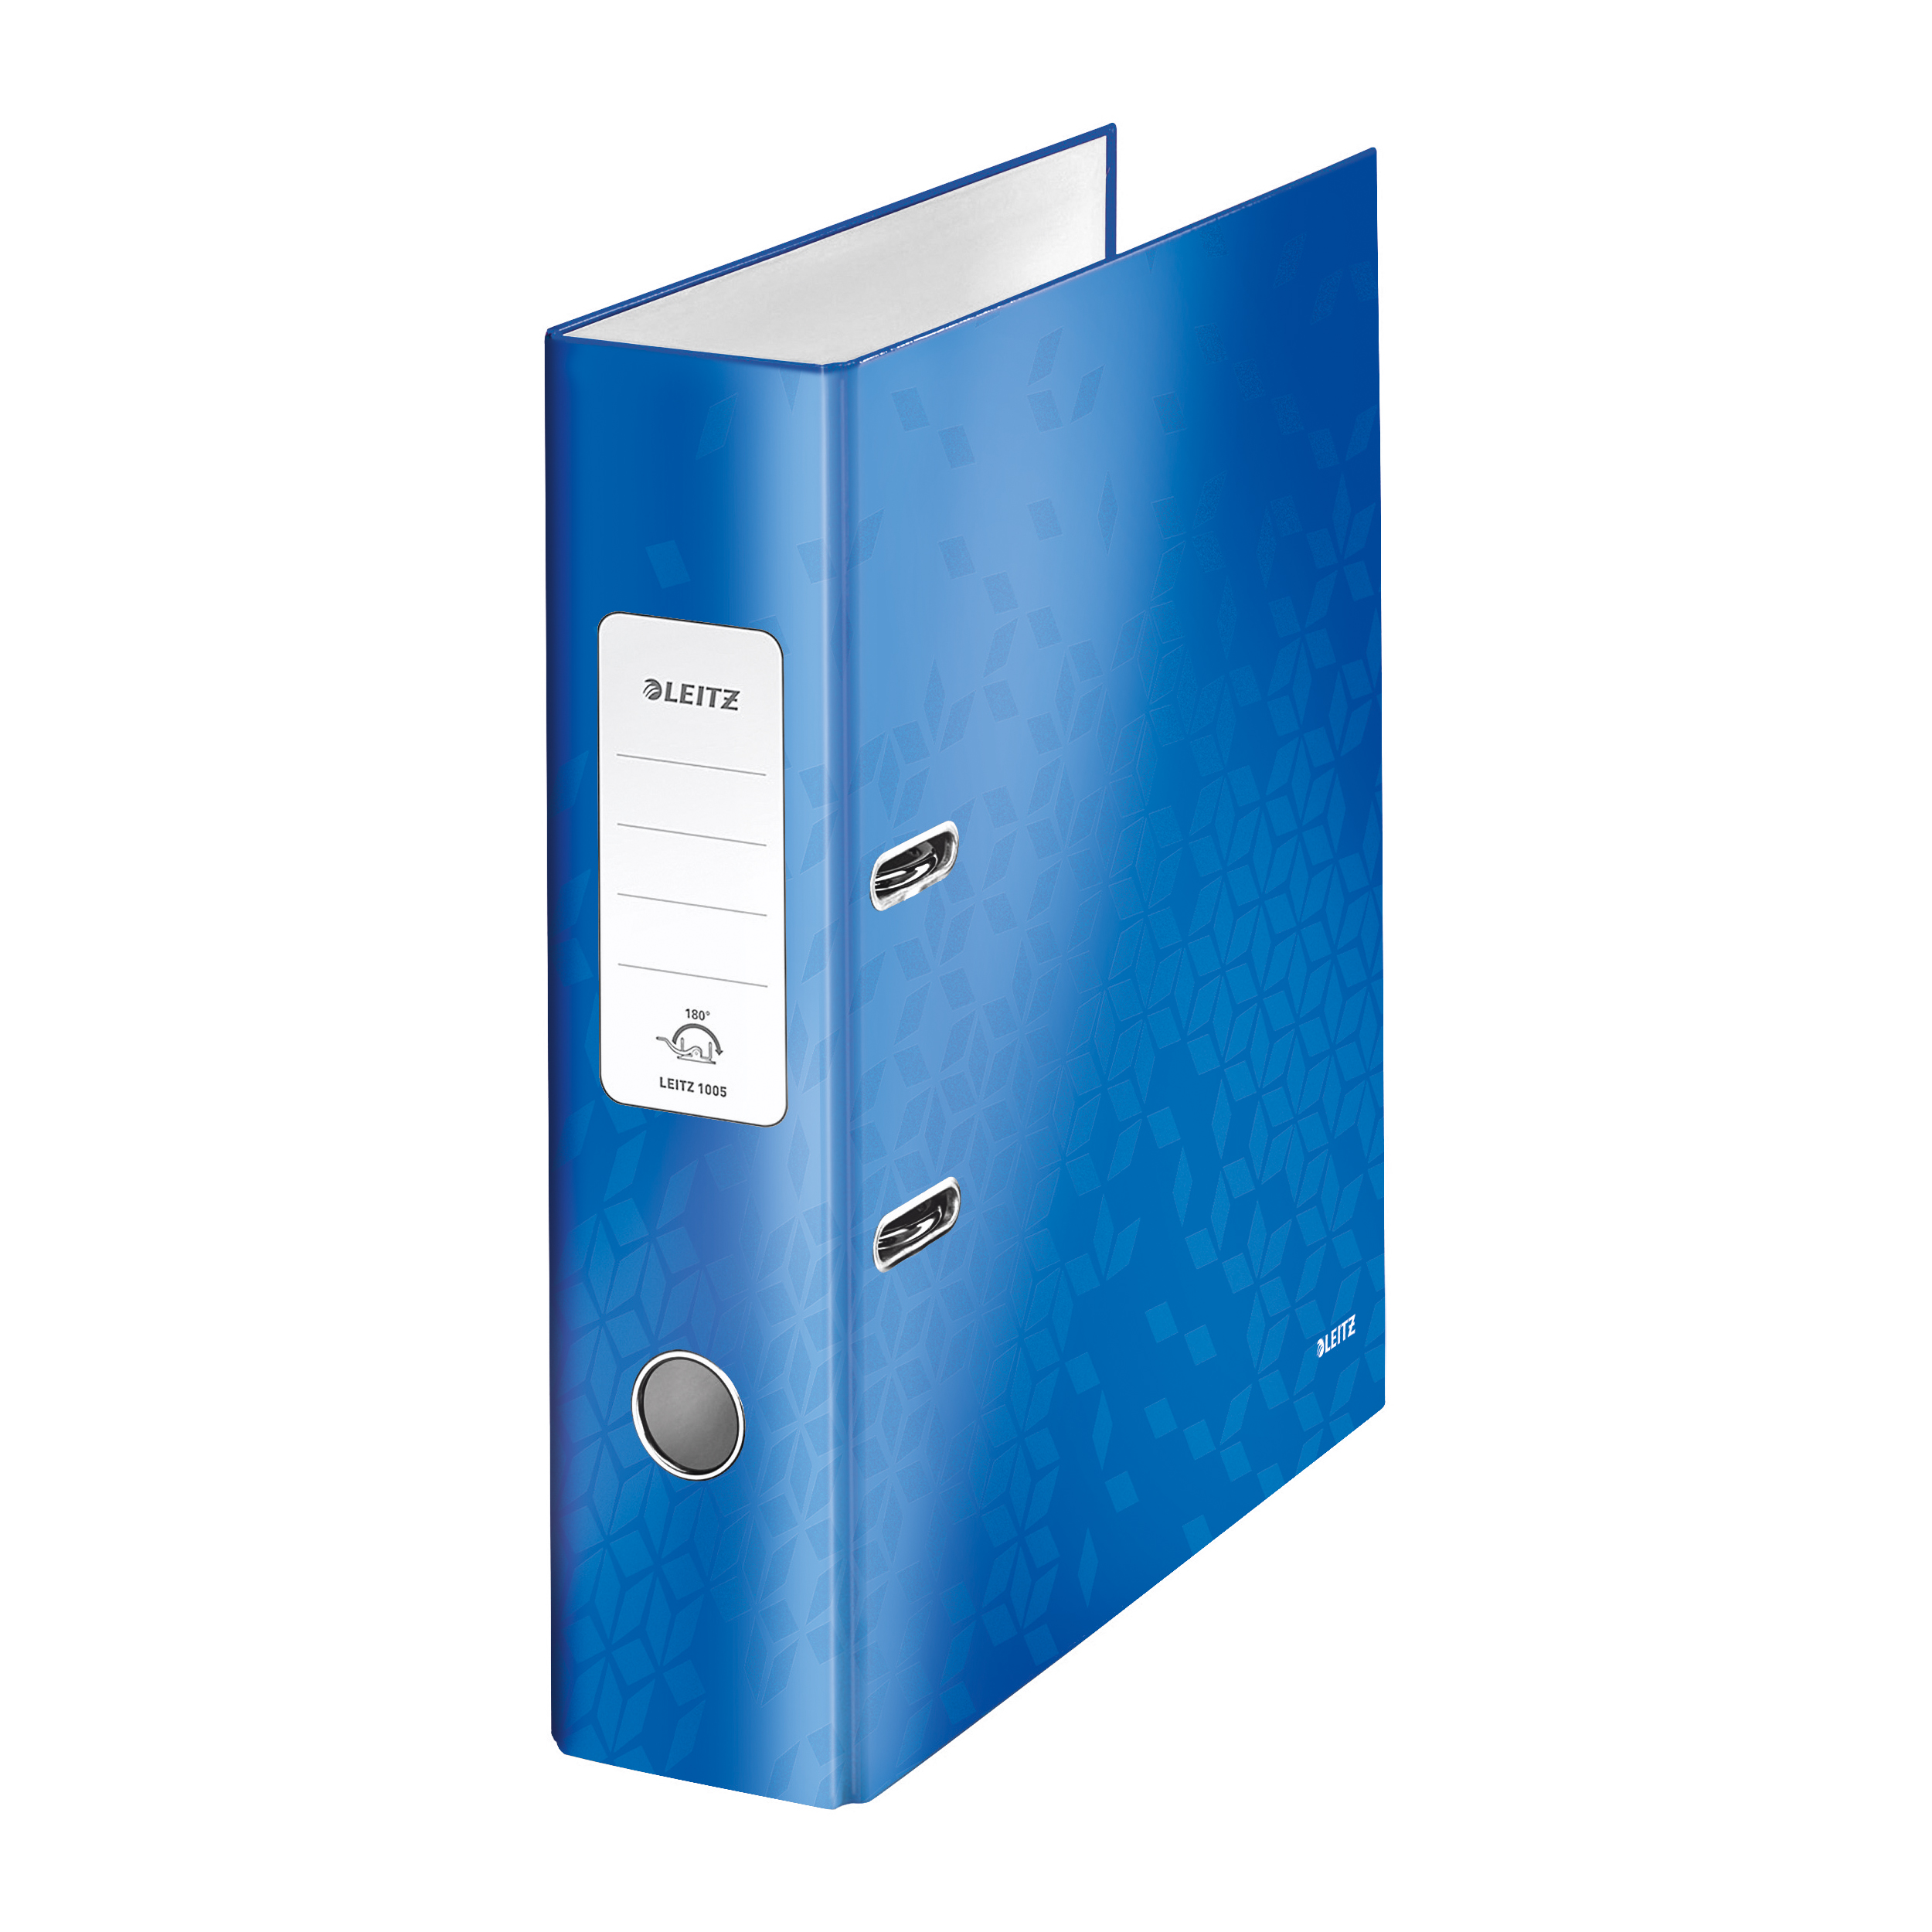 Leitz WOW Lever Arch File 80mm Spine for 600 Sheets A4 Blue Ref 10050036 Pack 10 REDEMPTION Oct-Dec19